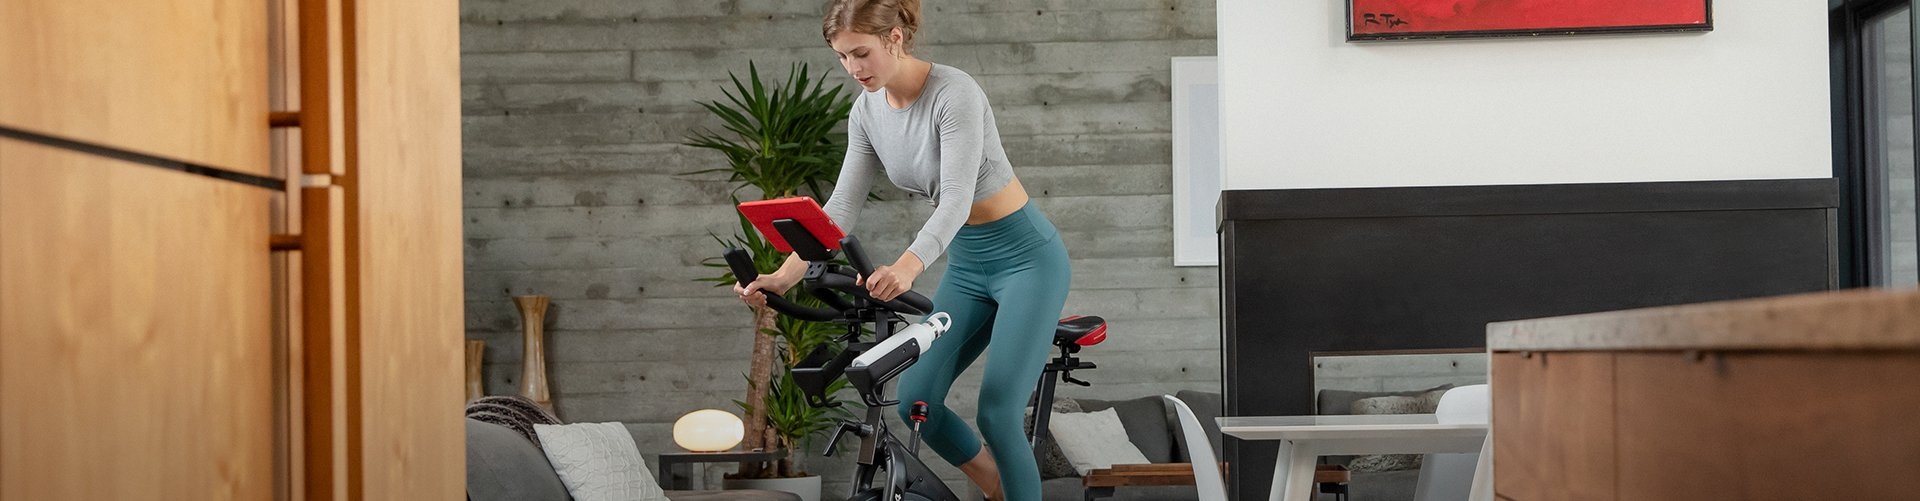 Schwinn Upright Bikes